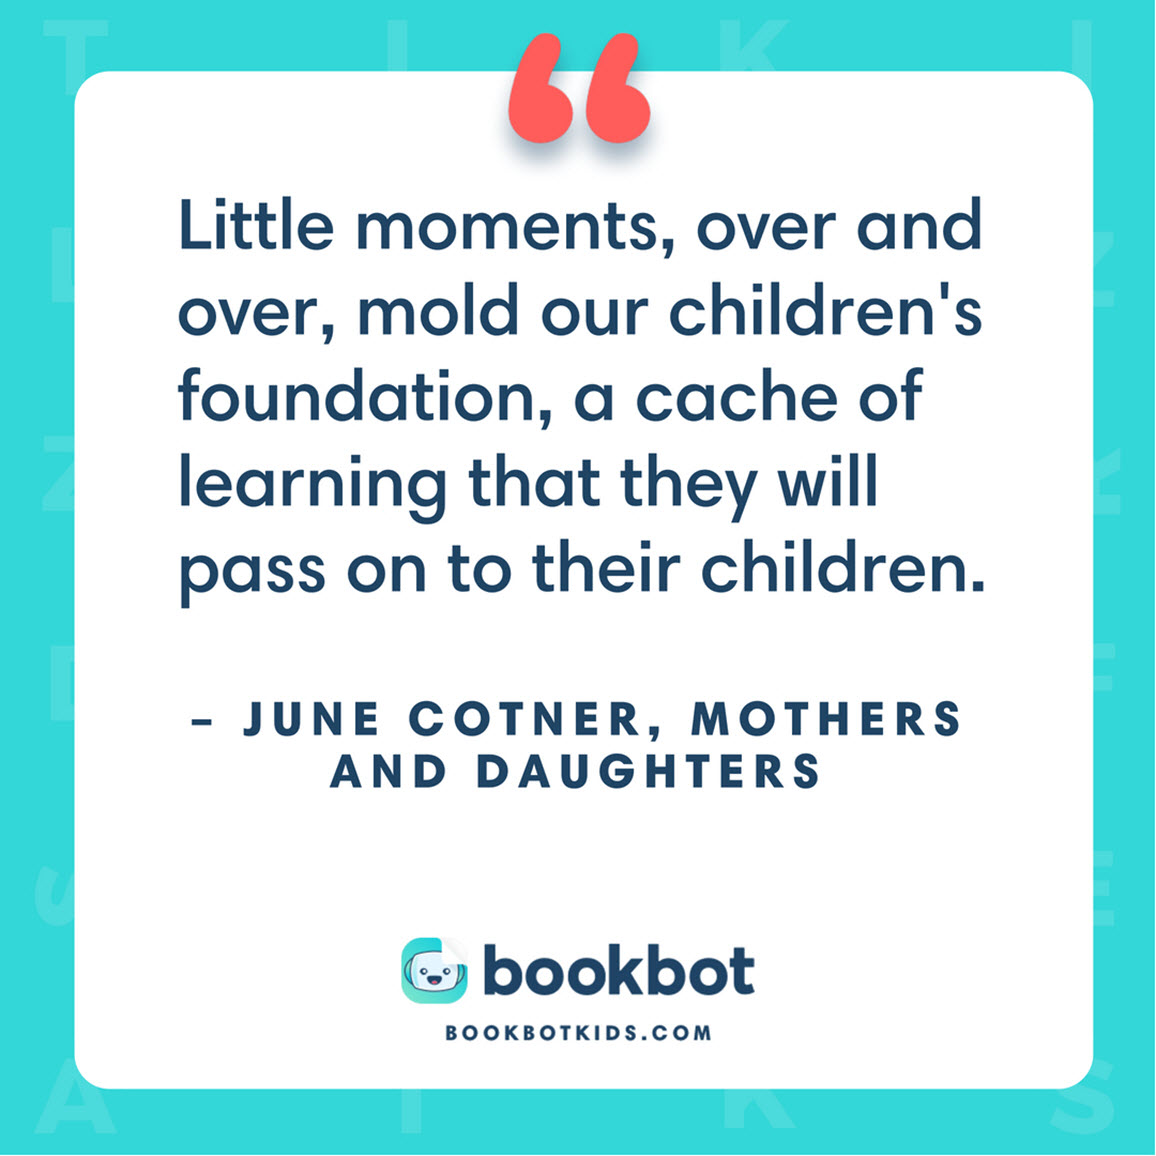 Little moments, over and over, mold our children's foundation, a cache of learning that they will pass on to their children. – June Cotner, Mothers and Daughters